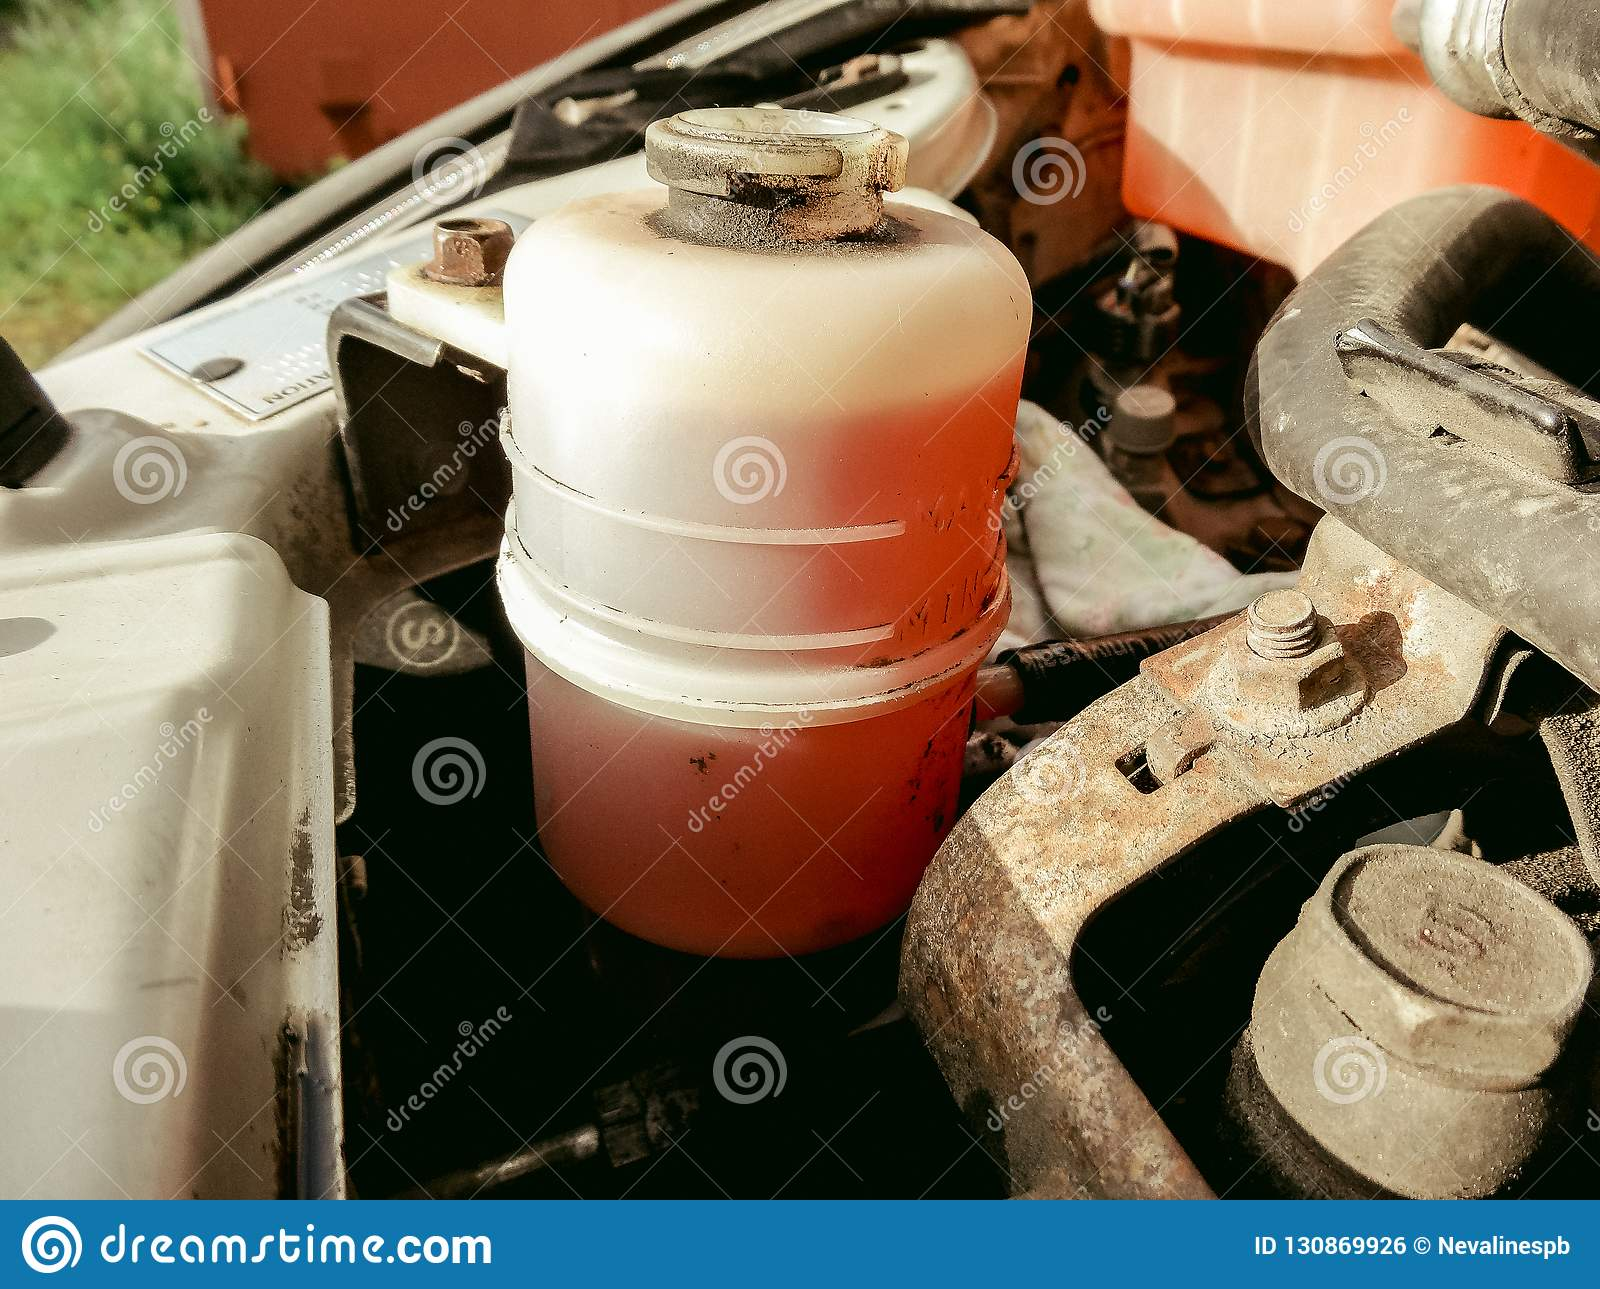 Replacing Vehicle Red Power Steering Fluid Stock Photo Image Of Garage Hand 130869926